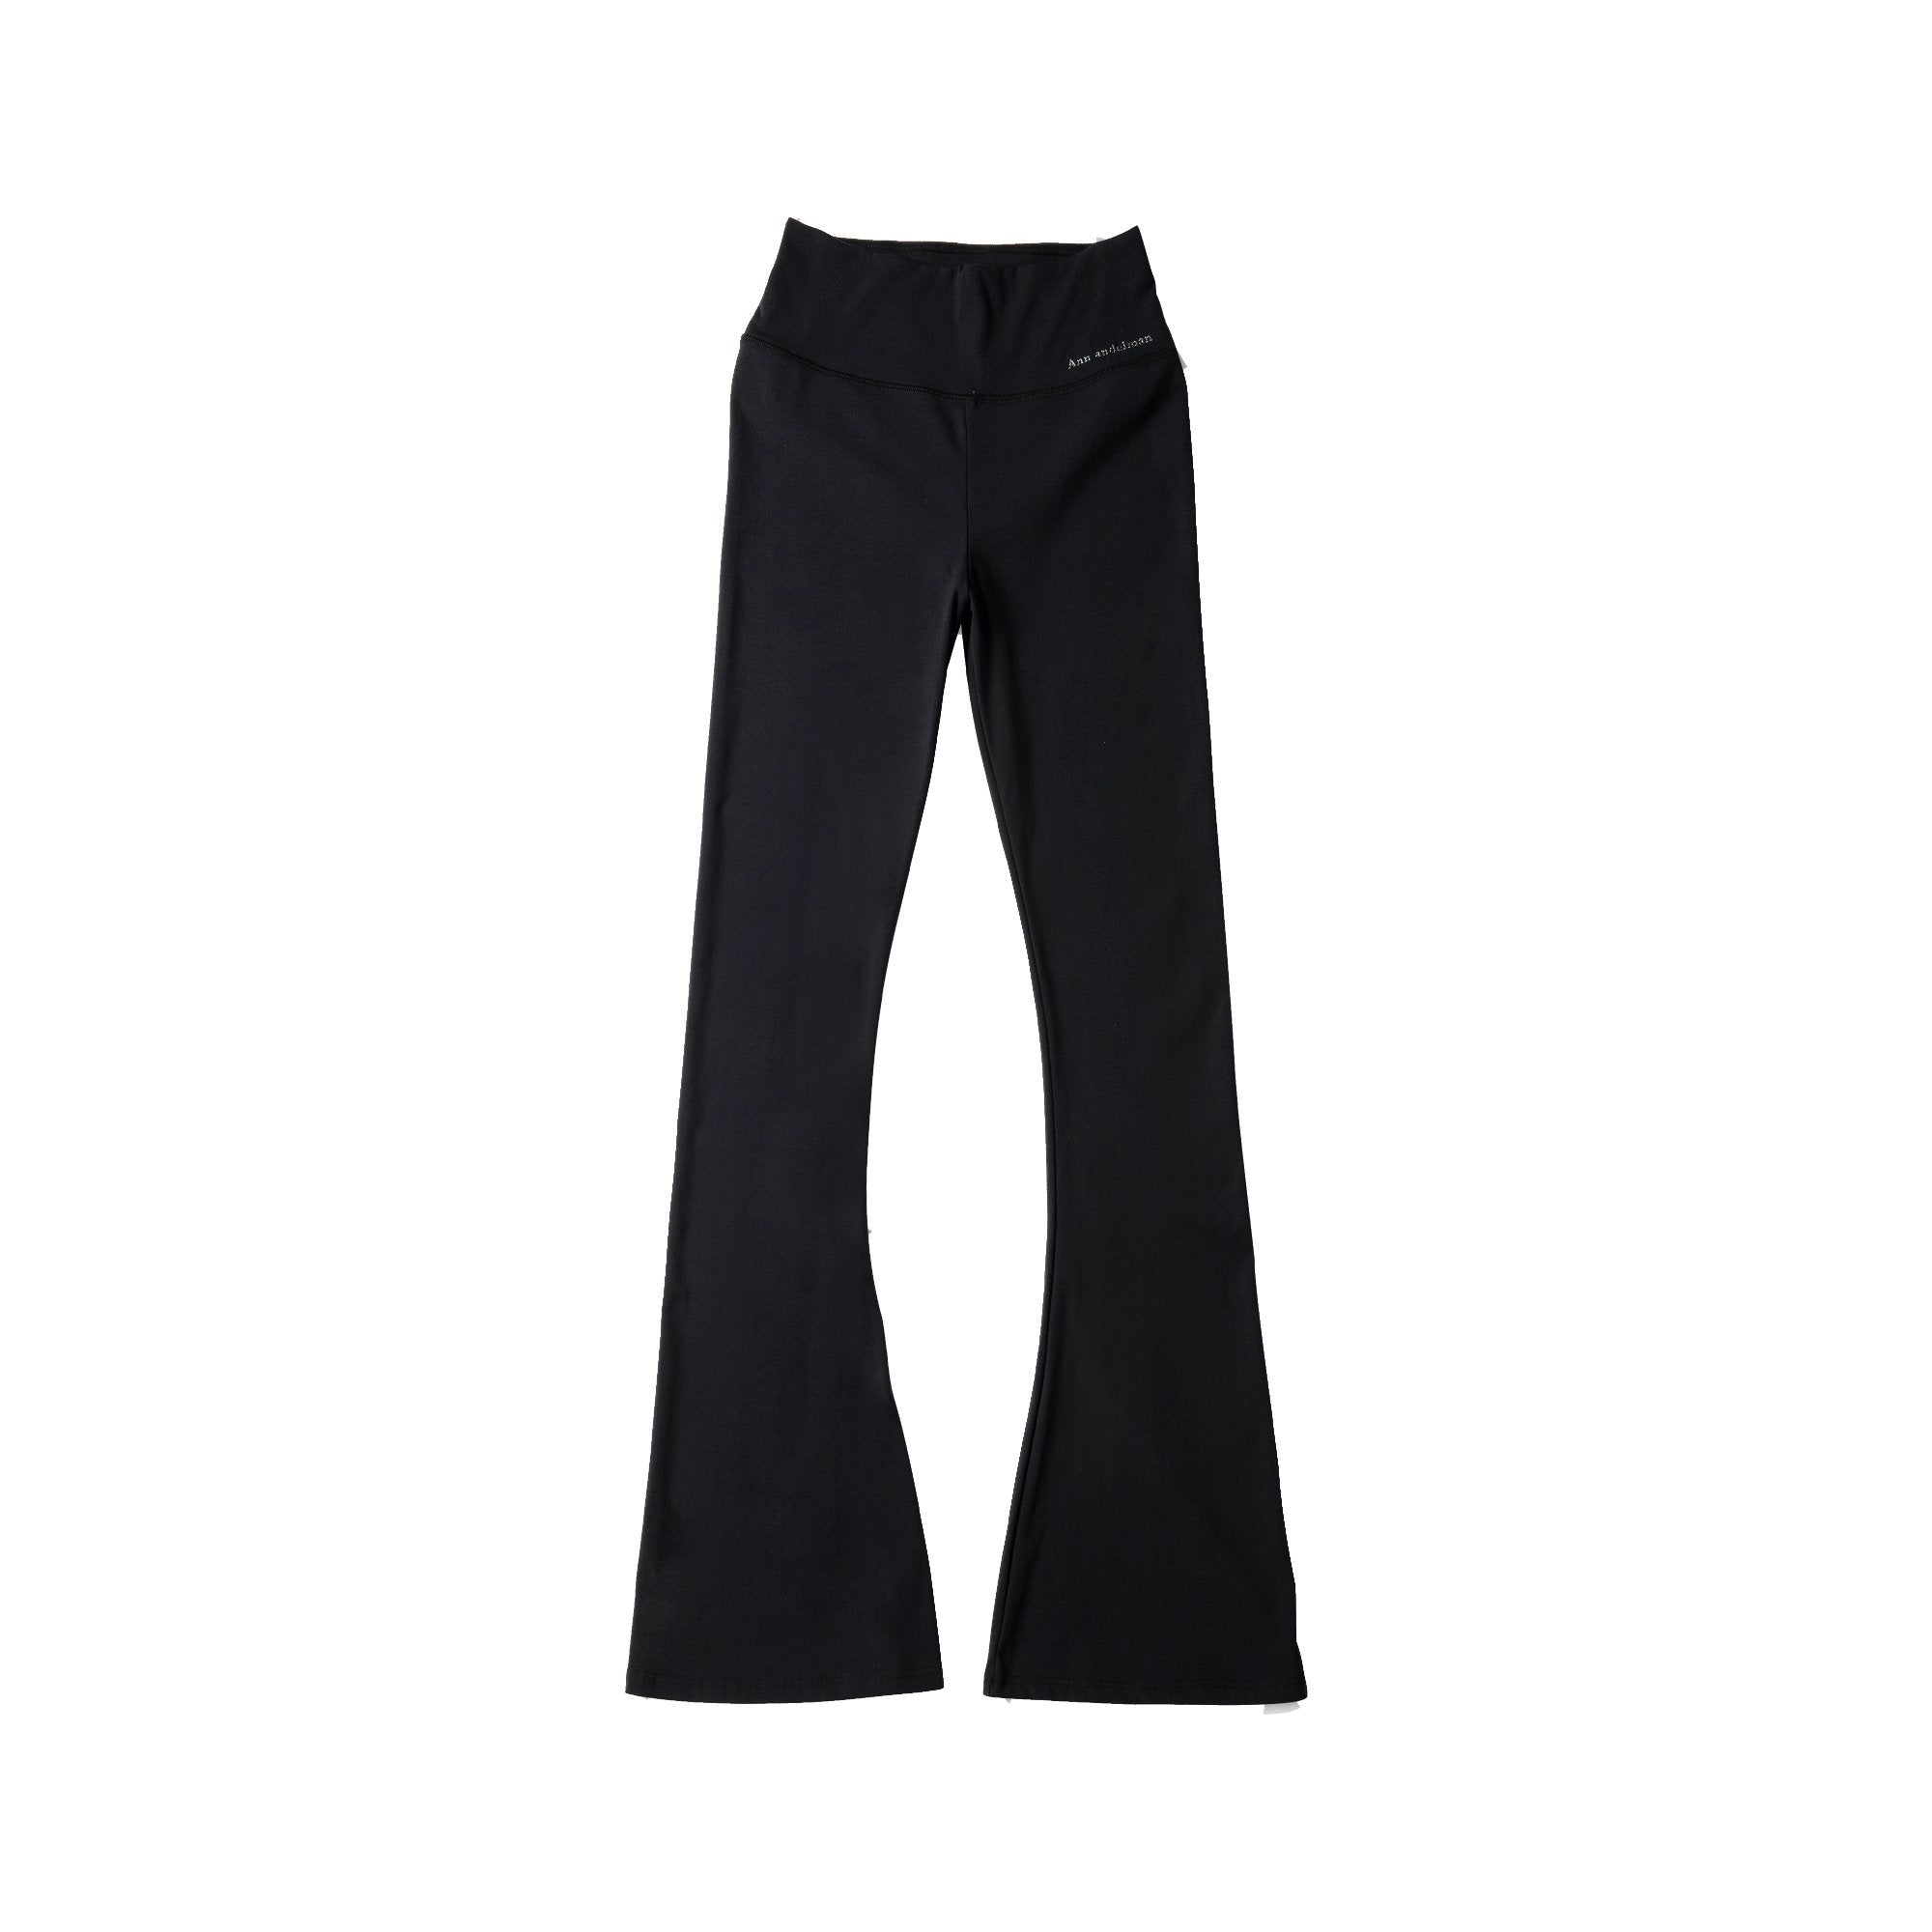 ANN ANDELMAN Black Stretch Wide Trousers | MADA IN CHINA